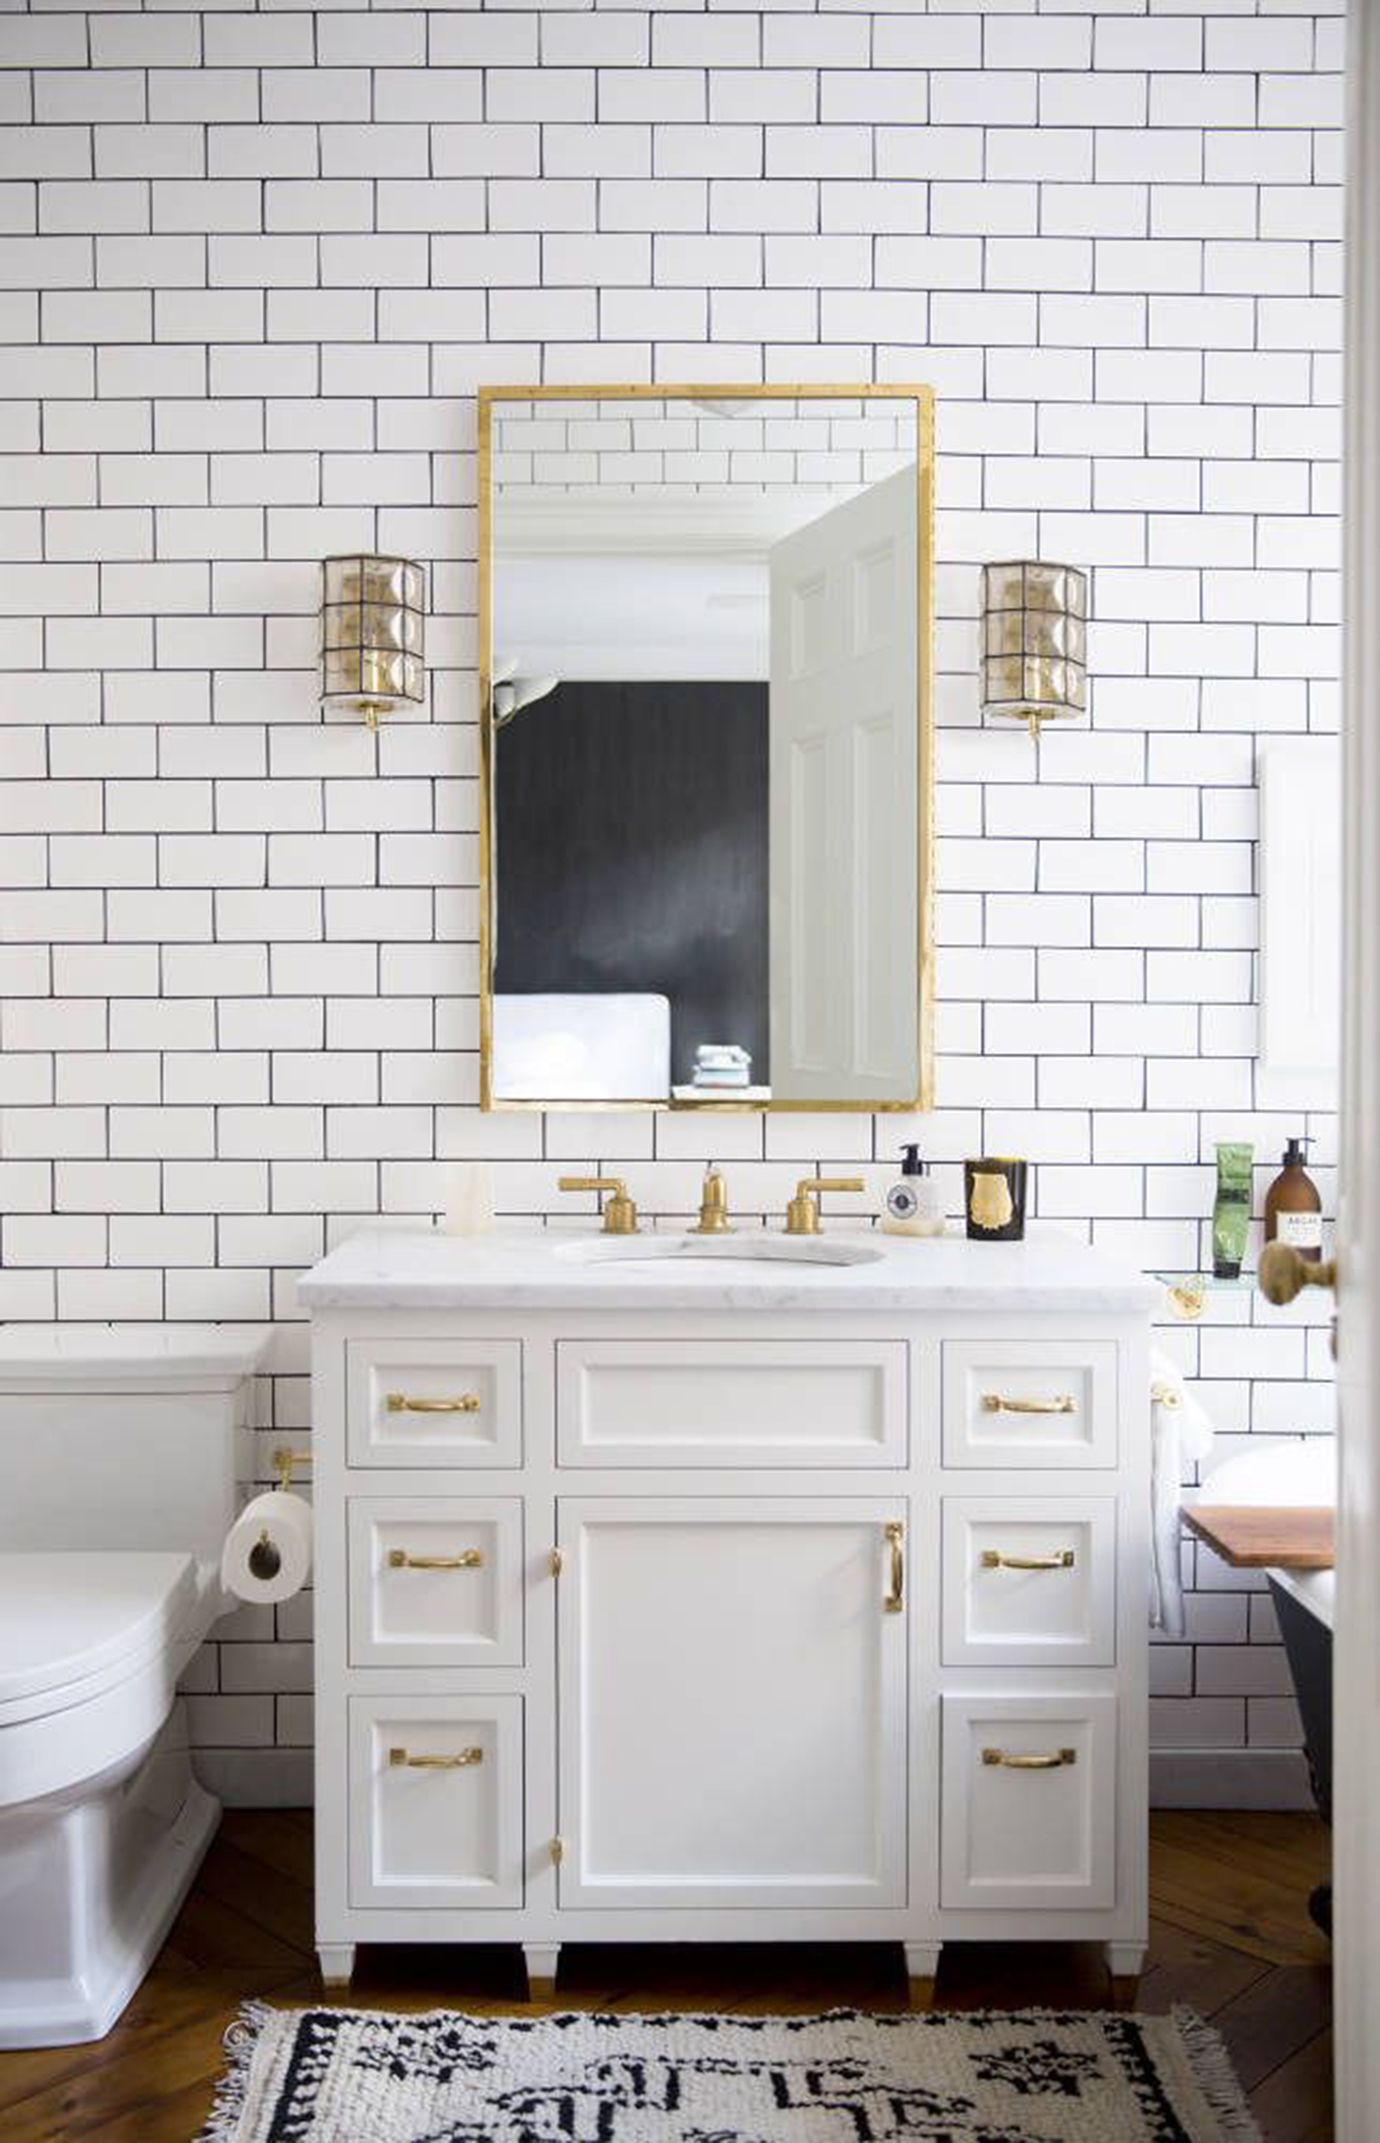 ali cayne's nyc townhouse | subway tiles, white subway tile